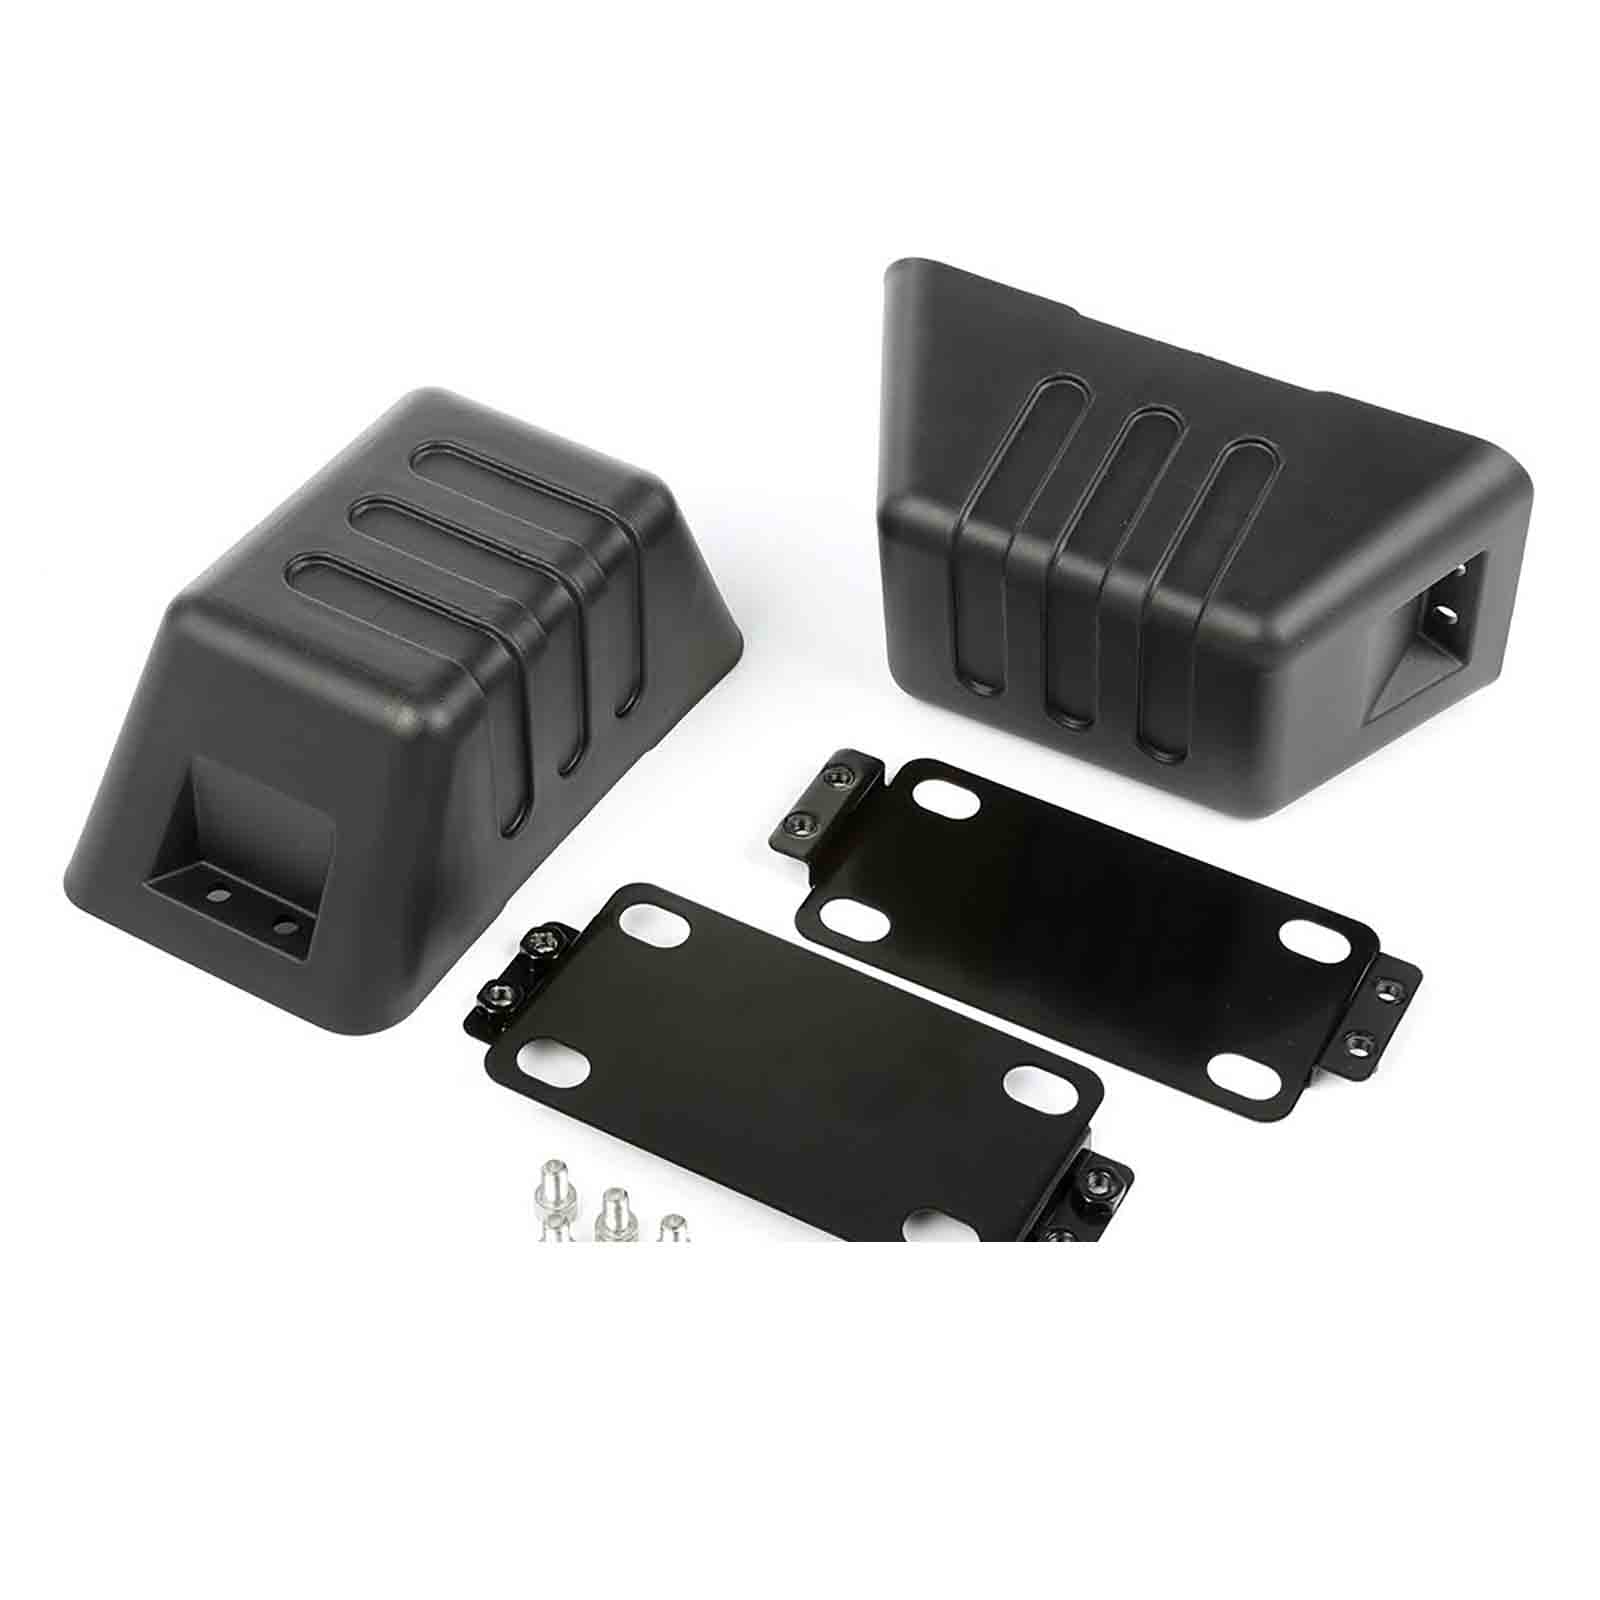 Tow point cover wrangler jk 07 16 xhd modular ricambi jeep